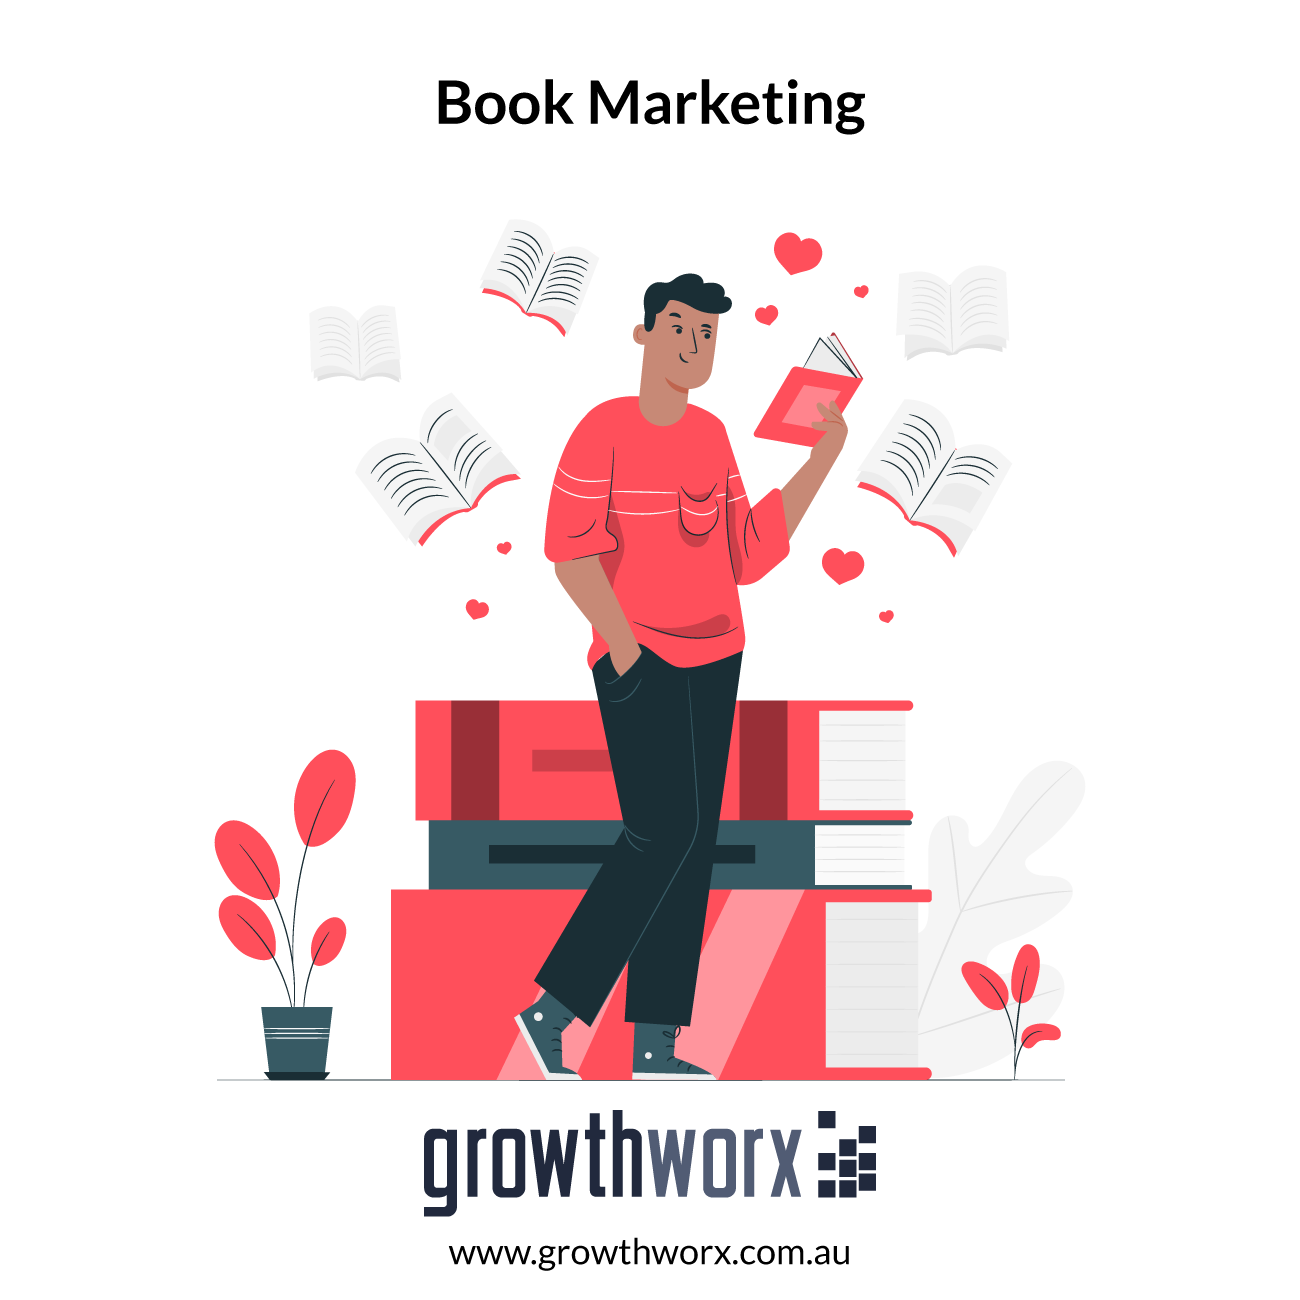 I will promote and market your free book on our website 1